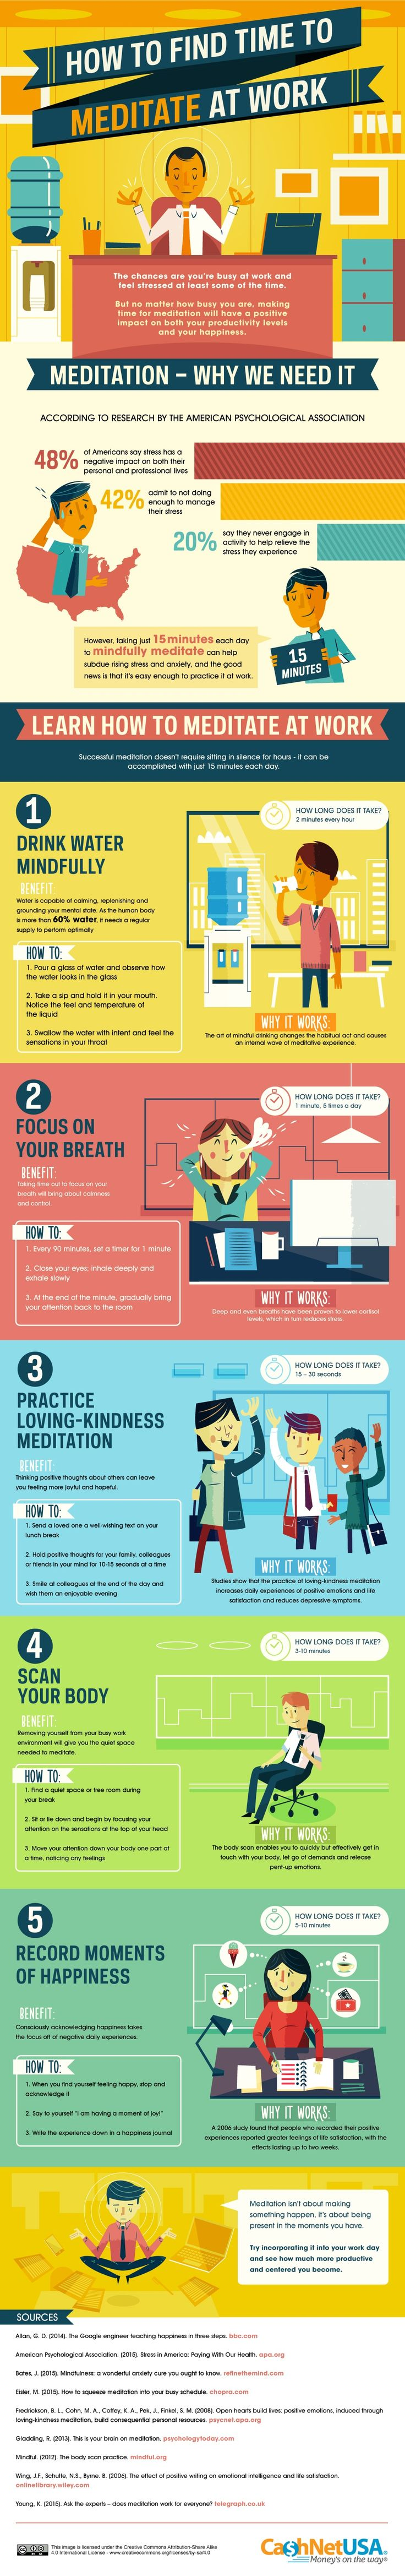 How to Find Time to Meditate at Work [Infographic], via @HubSpot